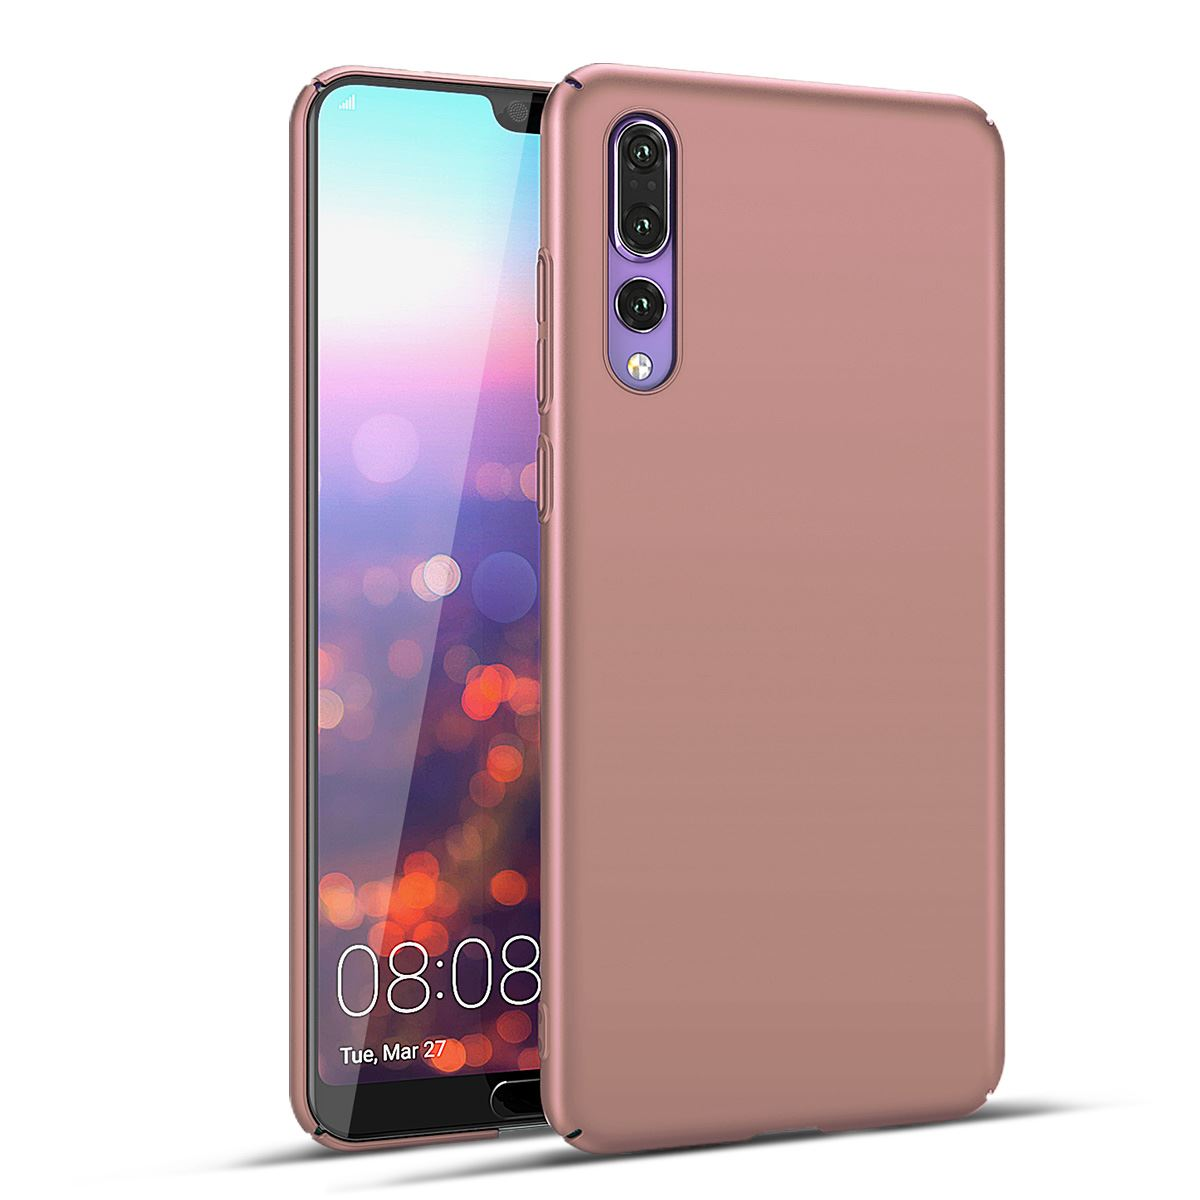 Luxury-Protective-Slim-Thin-Hard-Back-Case-Cover-For-Huawei-P20-Pro-P10-P-Smart thumbnail 37